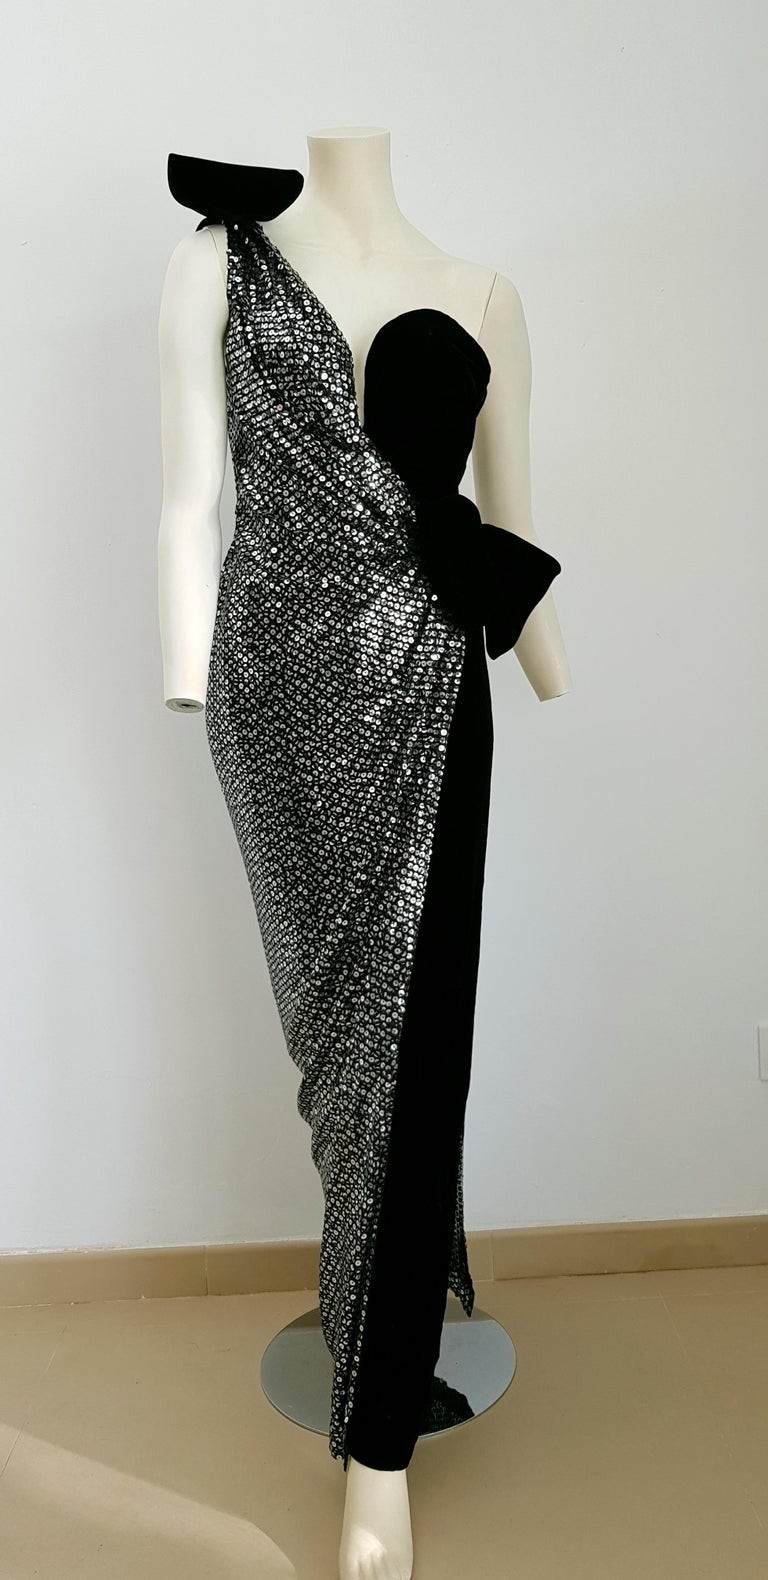 VALENTINO Haute Couture, sequins, silk velvet, black gown dress - Unworn, New In New Condition For Sale In Somo (Santander), ES